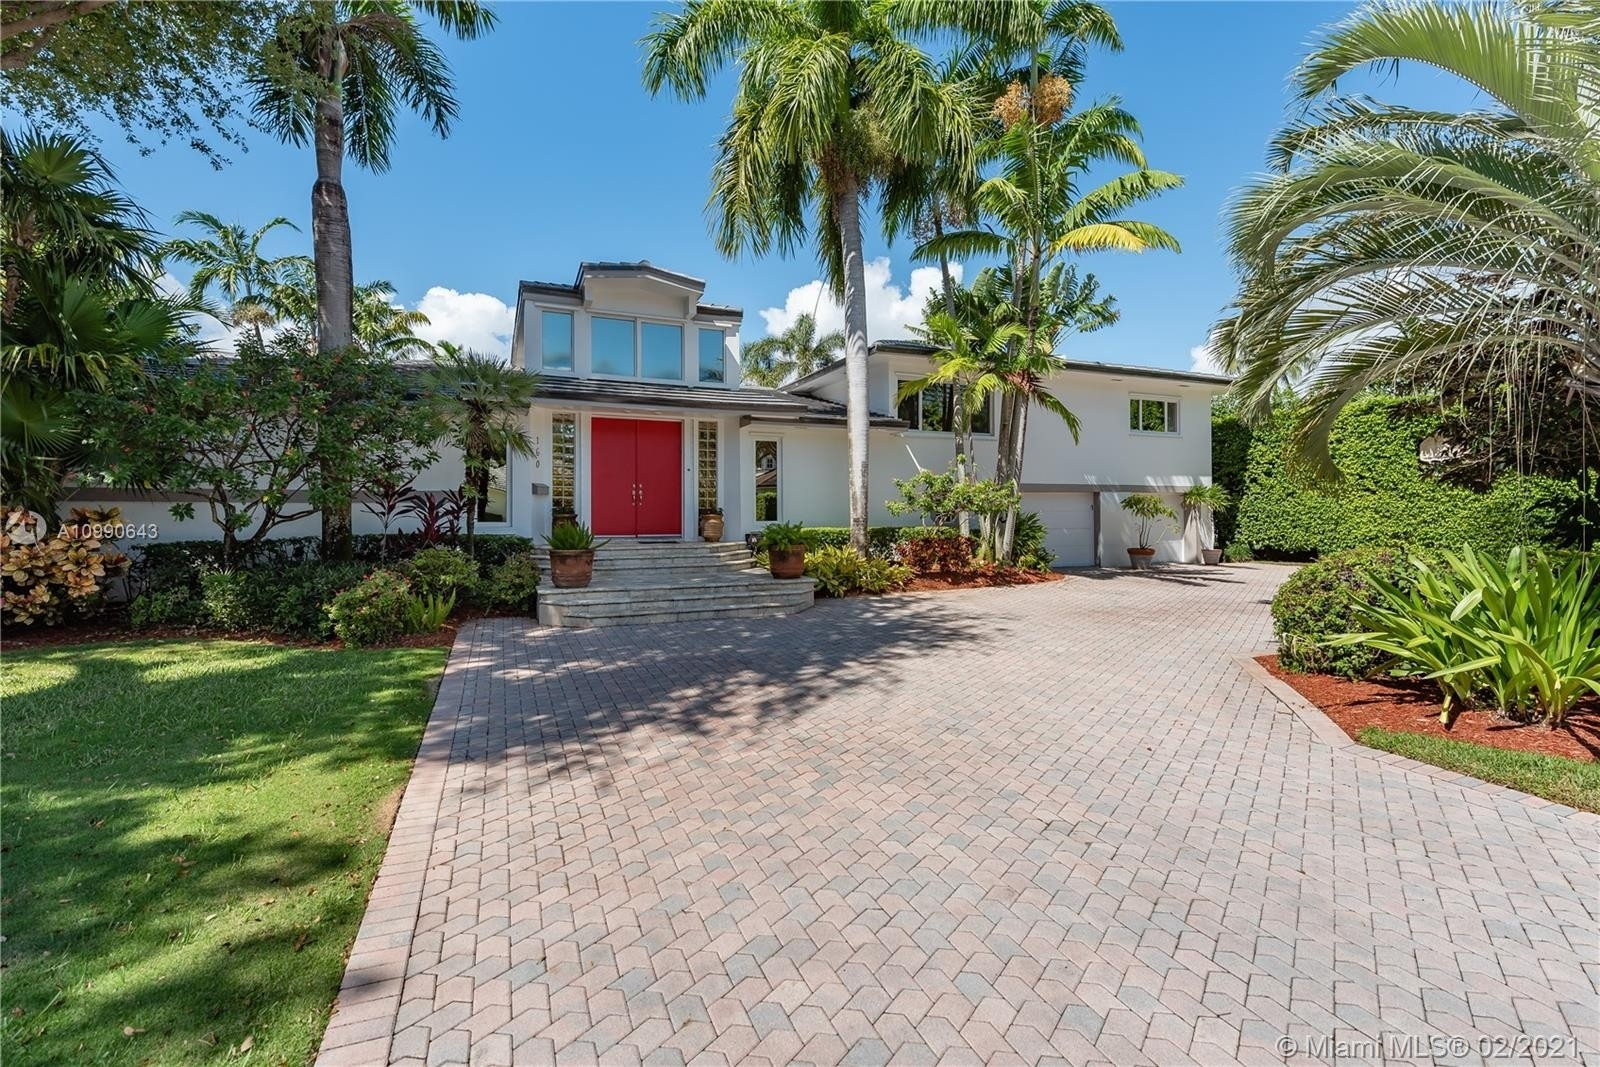 Property at Bal Harbour, FL 33154